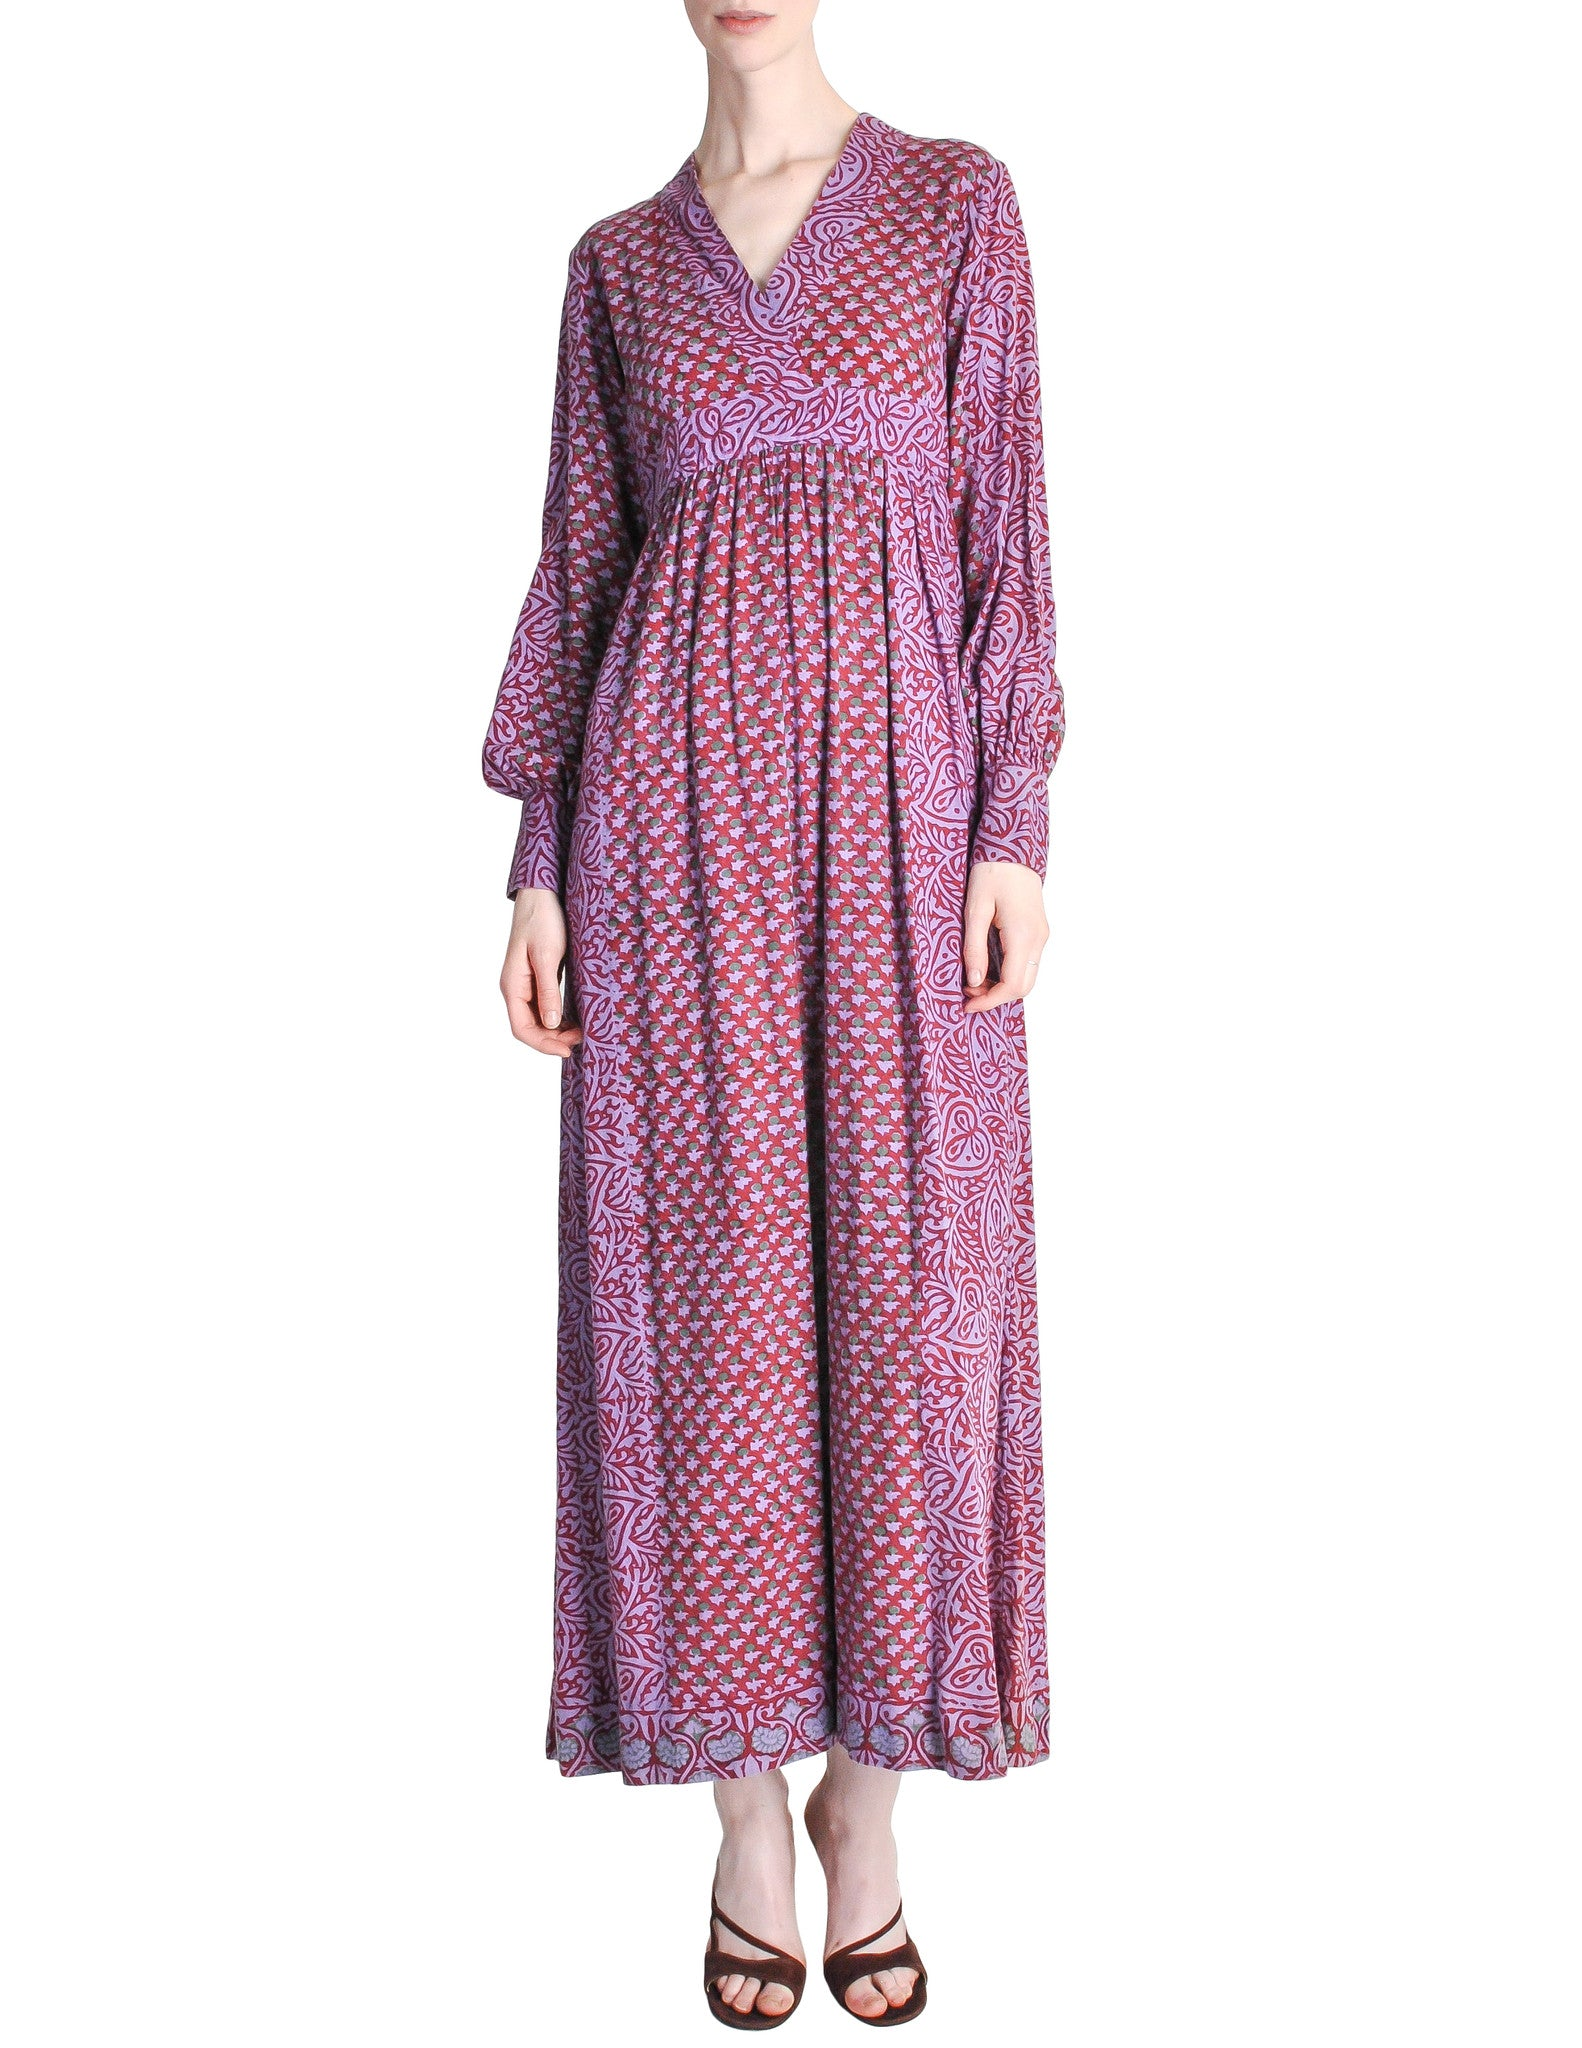 Vintage 1970s Purple Indian Block Print Maxi Dress - Amarcord Vintage Fashion  - 1